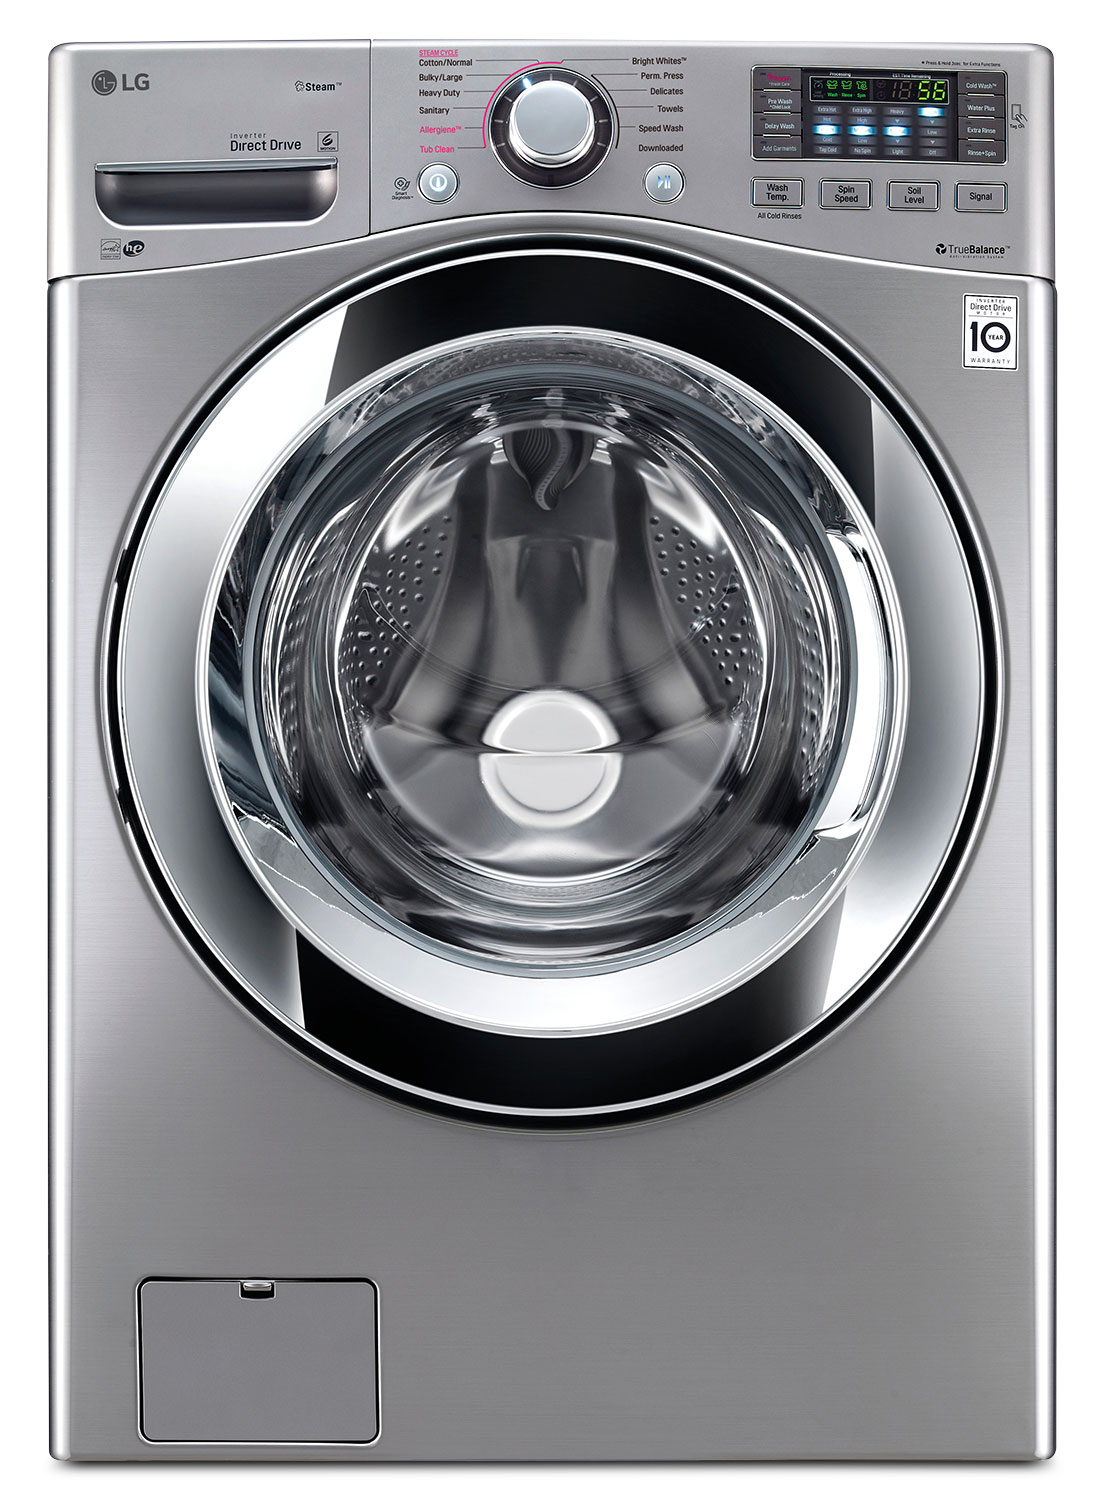 Washers and Dryers - LG Graphite Steel Front-Load Washer (5.2 Cu. Ft. IEC) - WM3670HVA